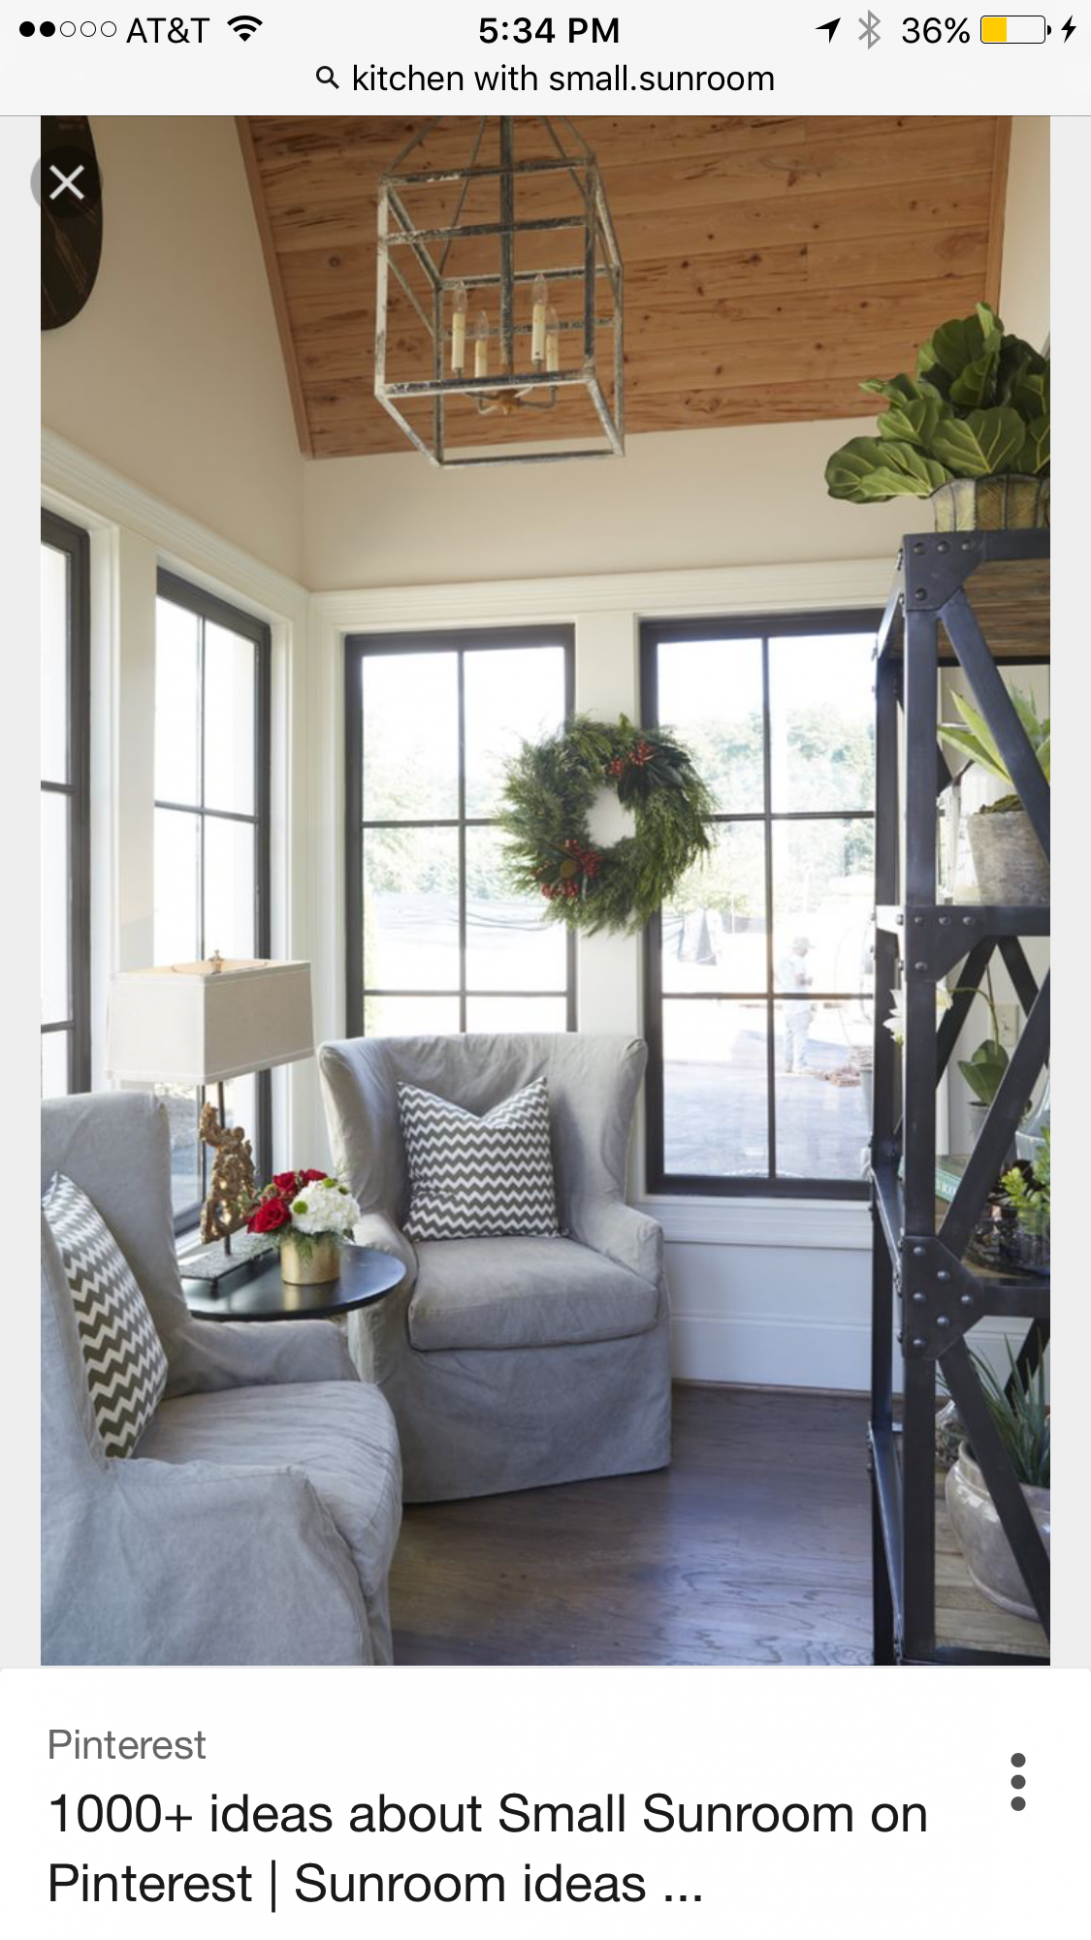 Like black windows | Small sunroom, Sunroom decorating, Sunroom ...